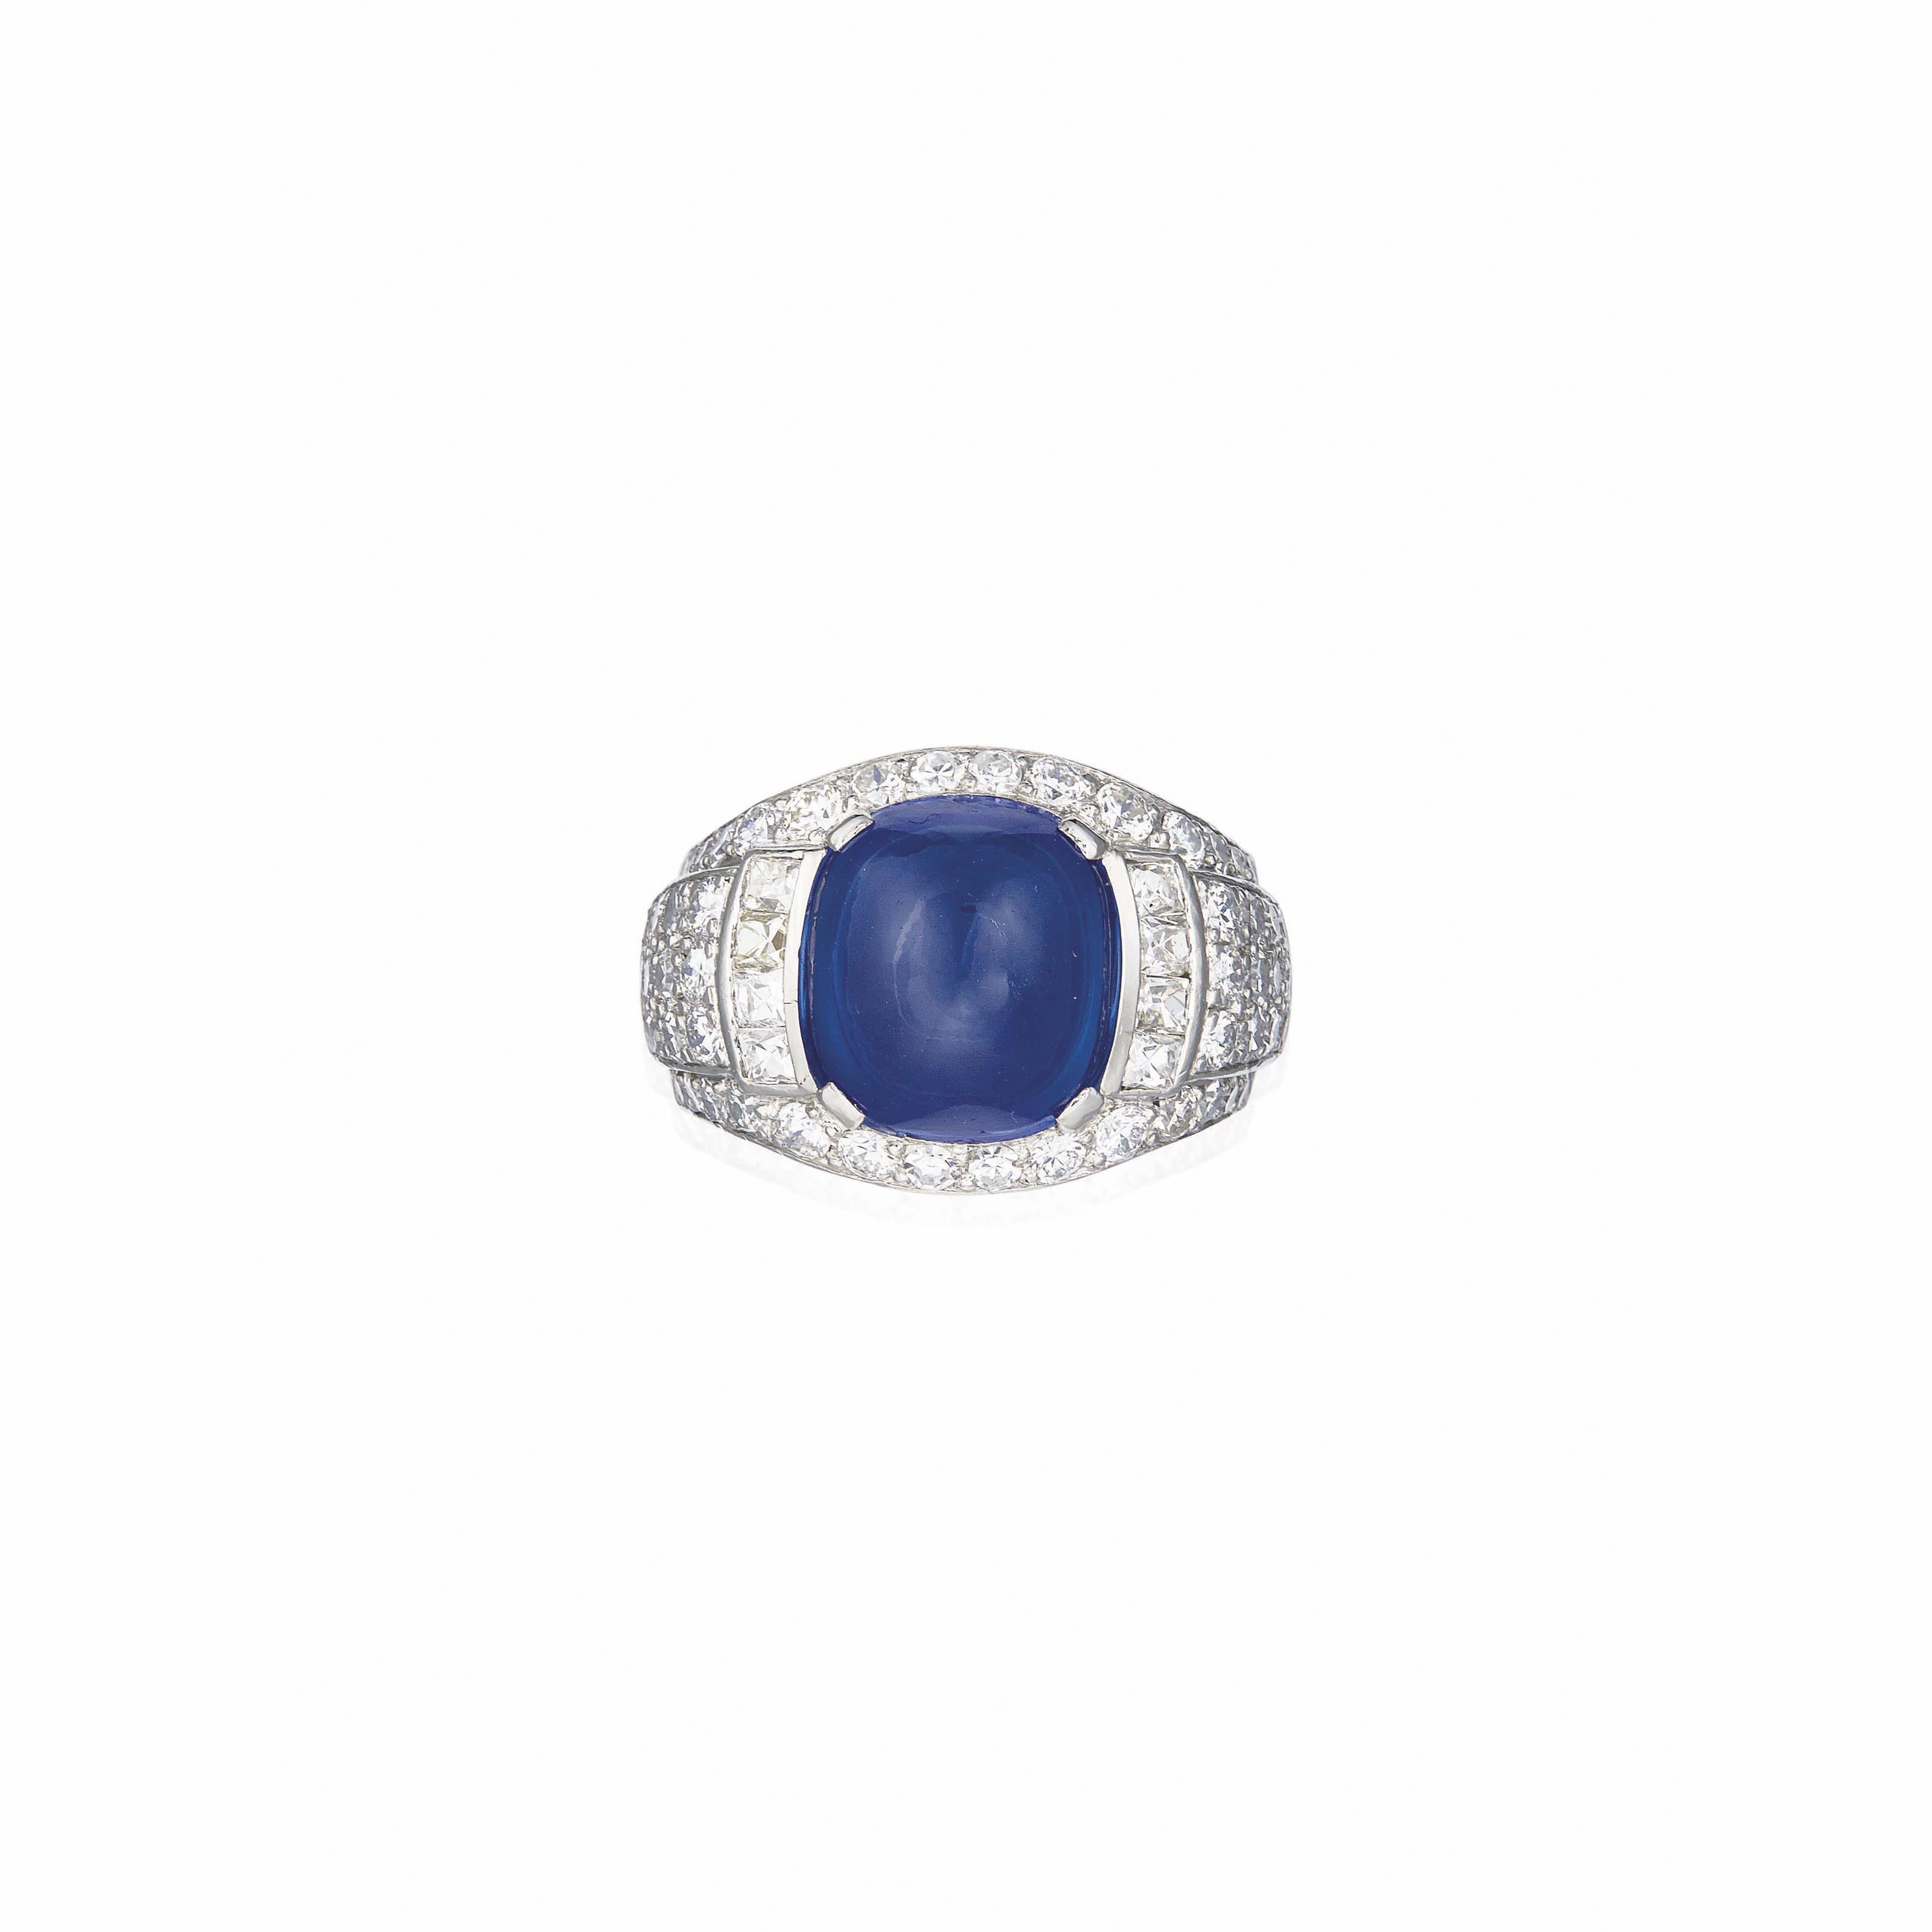 A SAPPHIRE AND DIAMOND RING, BY BOLIN